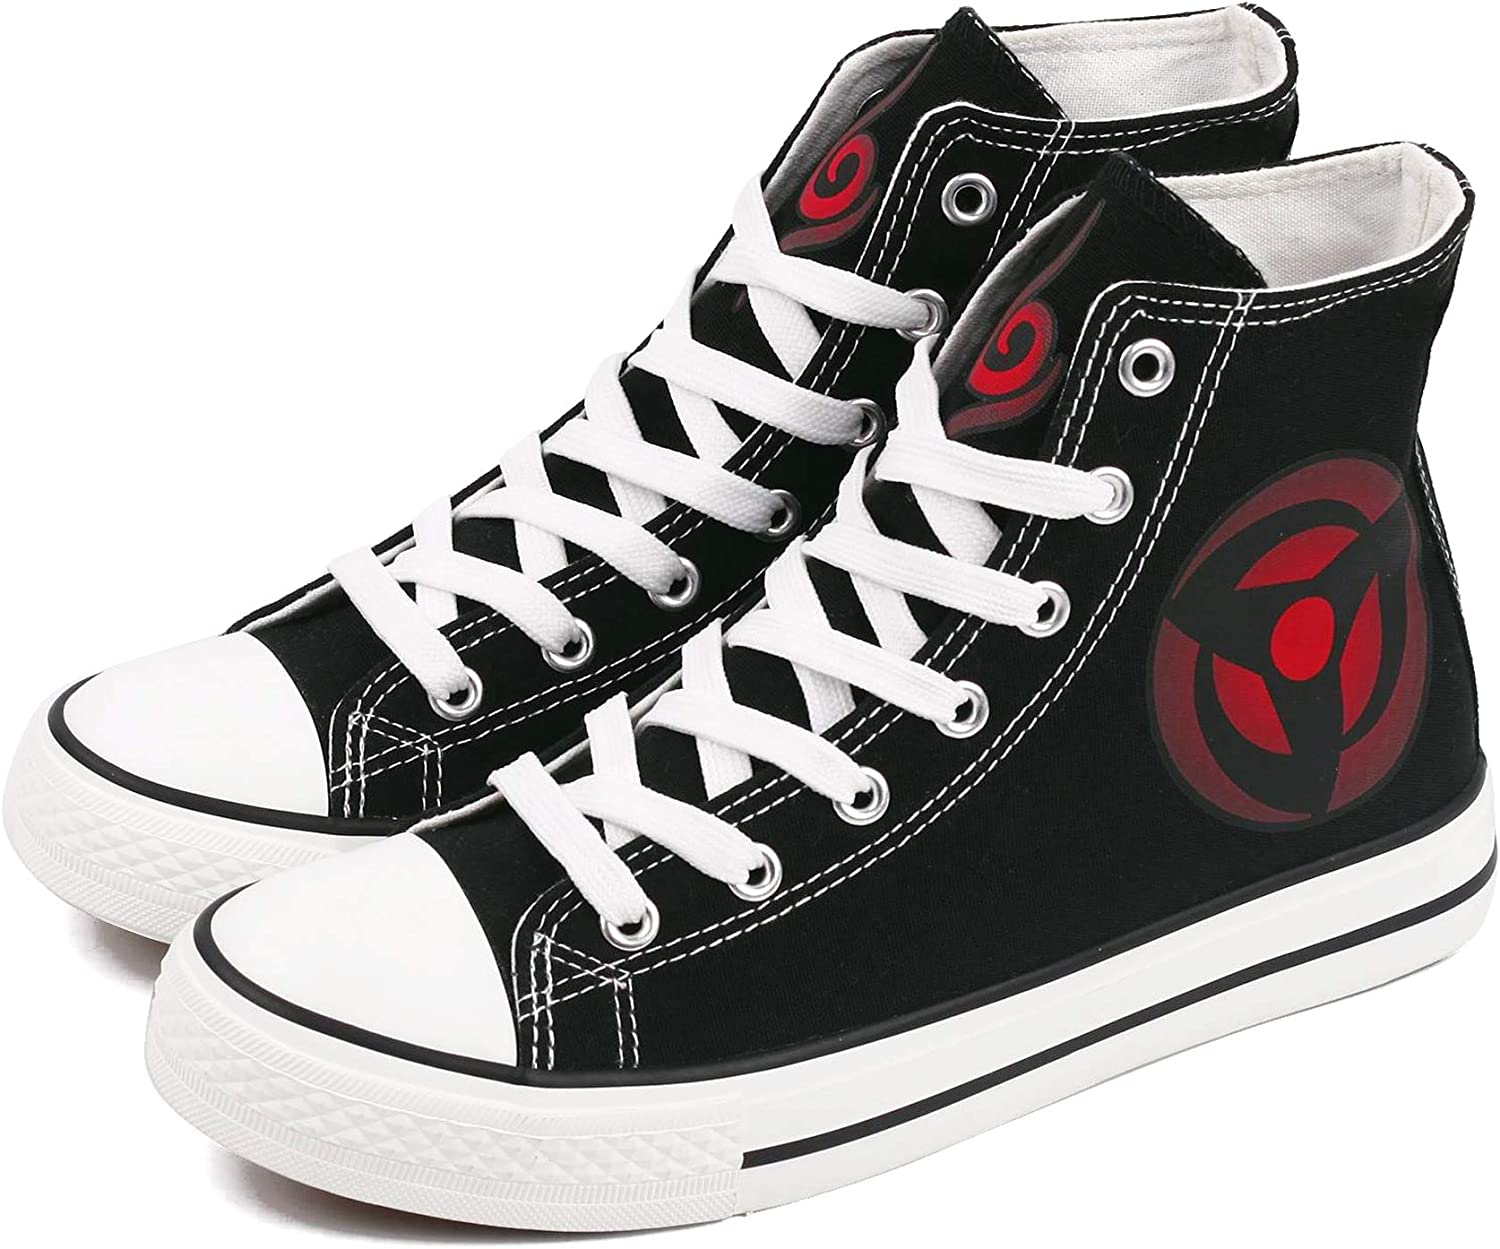 E_LOV Naruto Anime Sharingan Logo Hand-Painted Canvas shoes High Top Sneakers Anime Painted Cosplay shoes for Women and Men Black